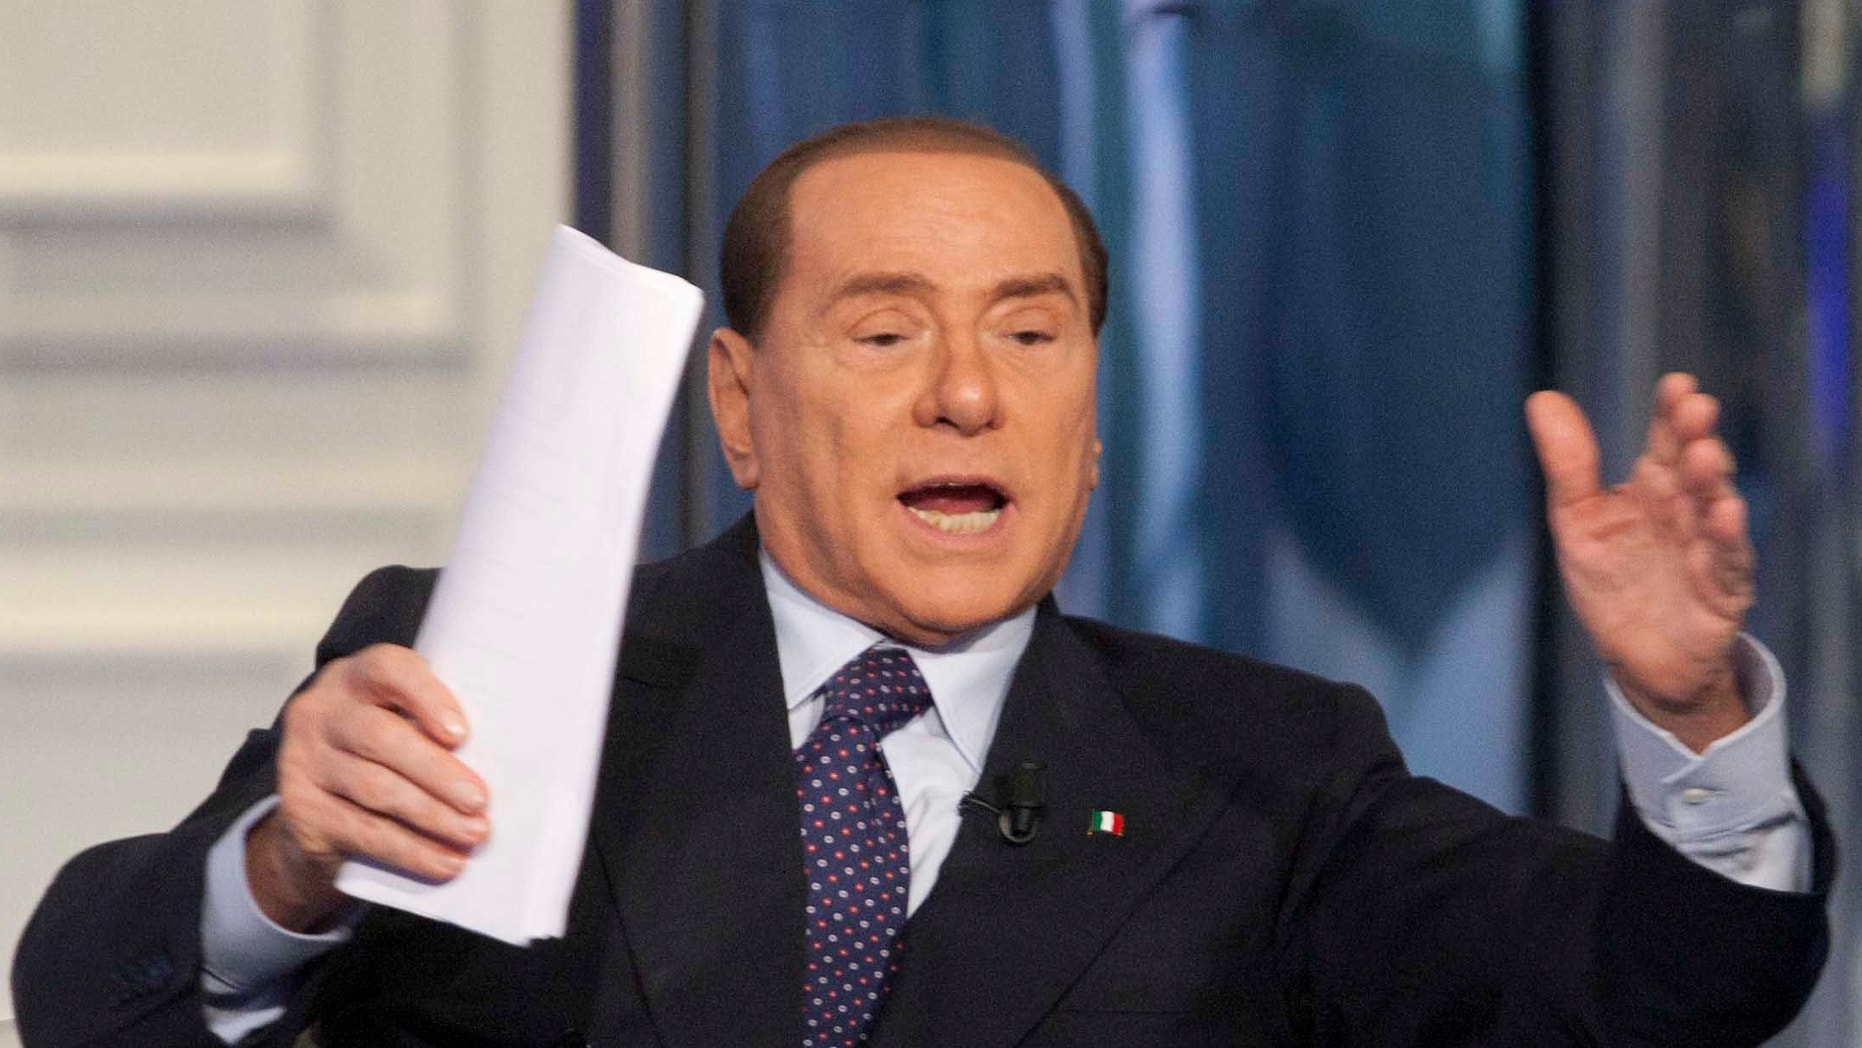 Jan. 9, 2013 - FILE photo of Former Premier Silvio Berlusconi  interviewed during a television show in Rome, Italy.